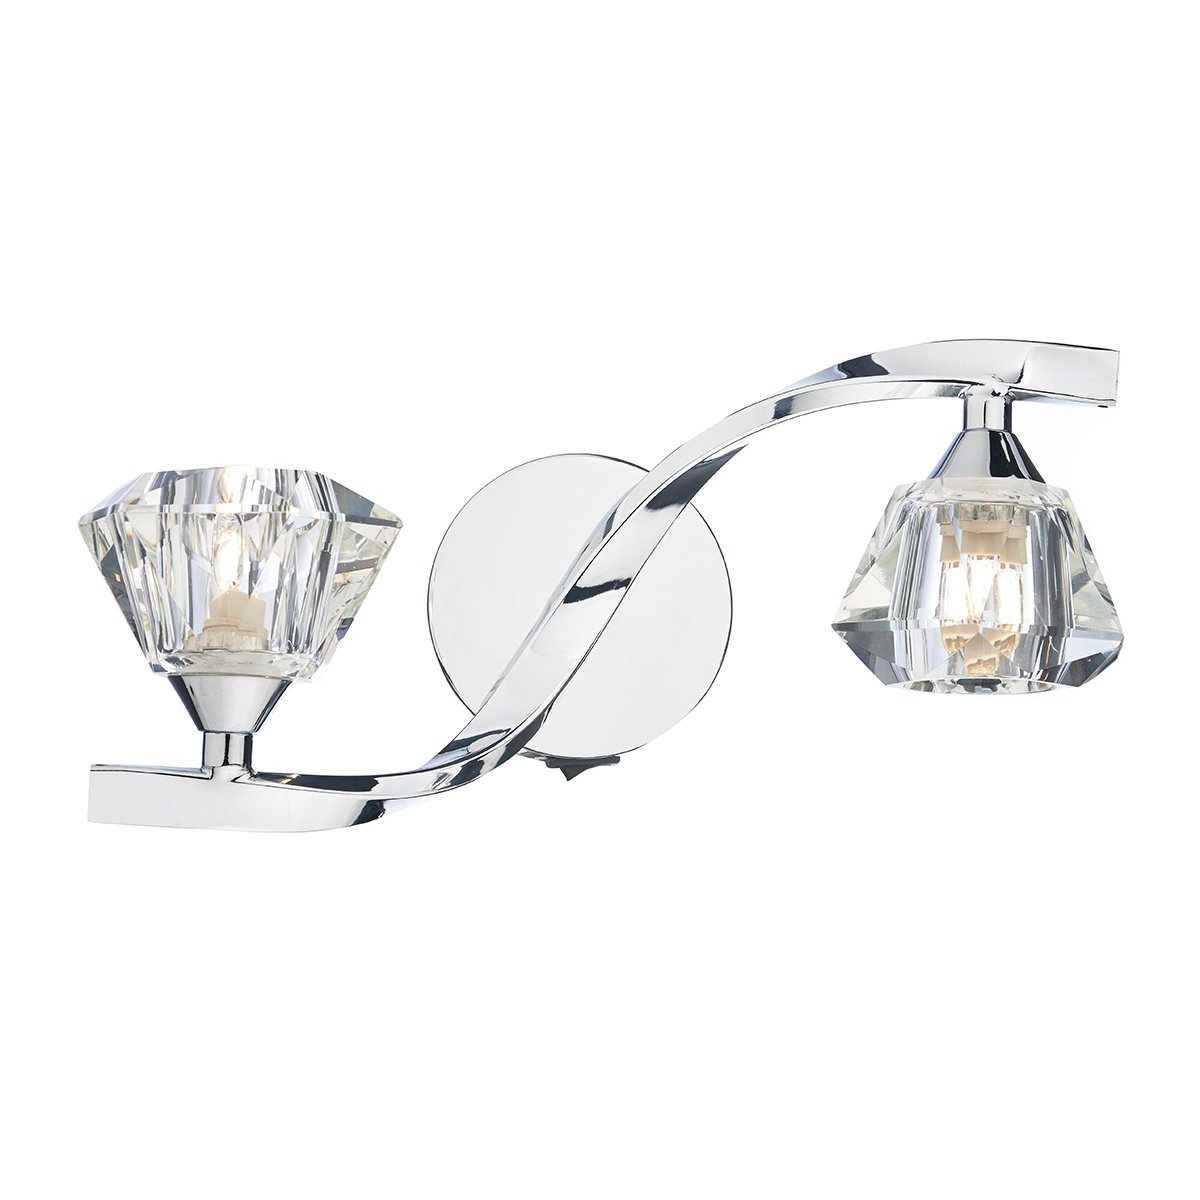 Dar ANC192 Ancona Spare Crystal Glass Shade